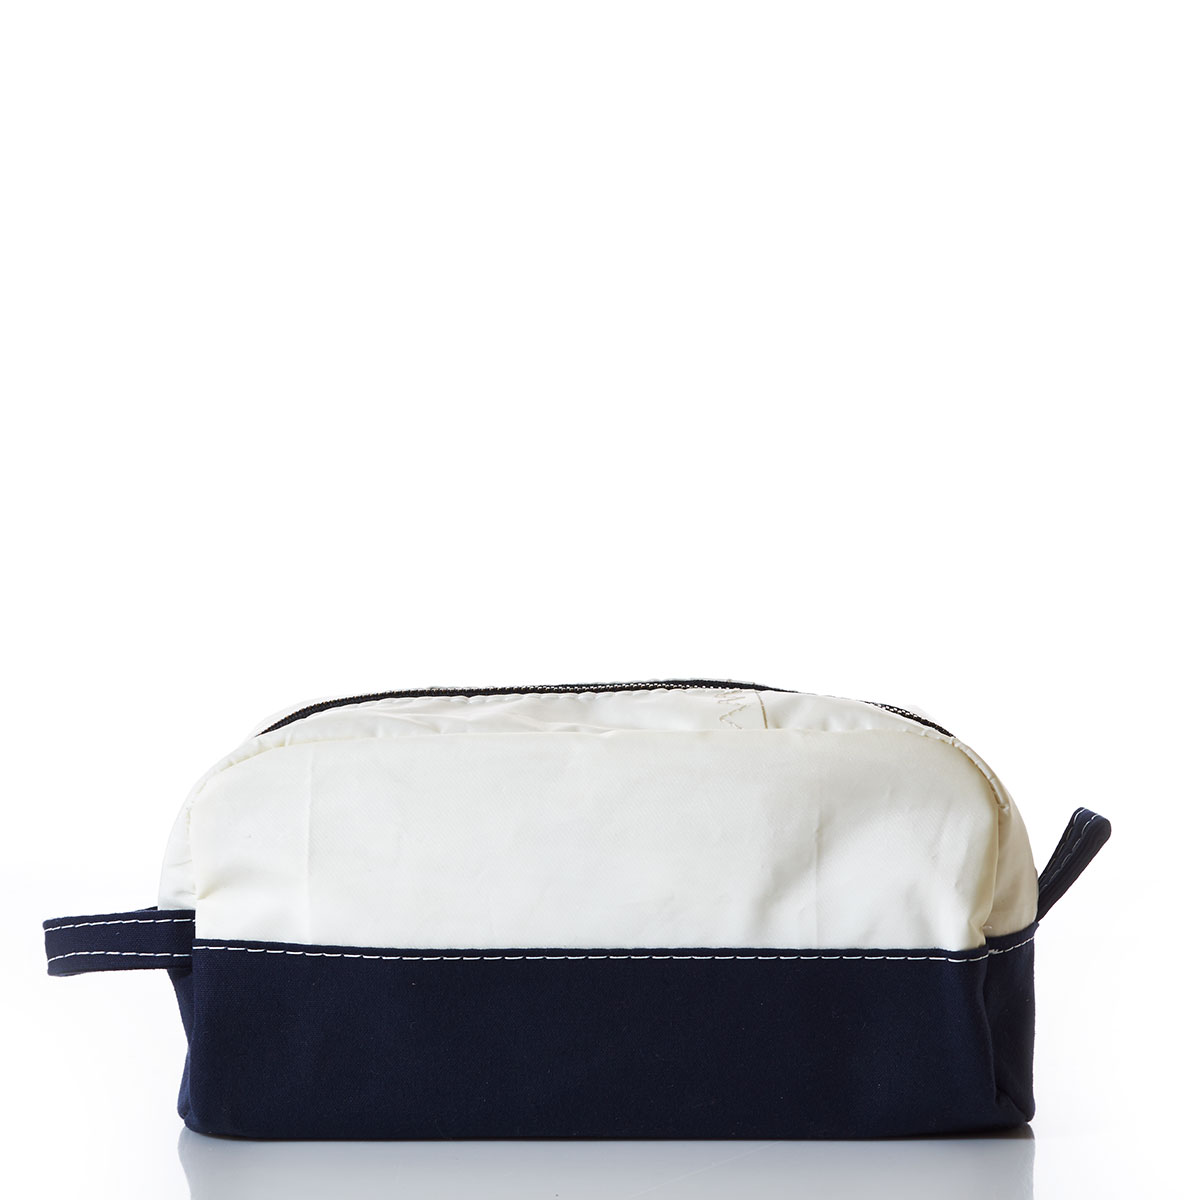 Recycled navy and white sail cloth toiletry bag